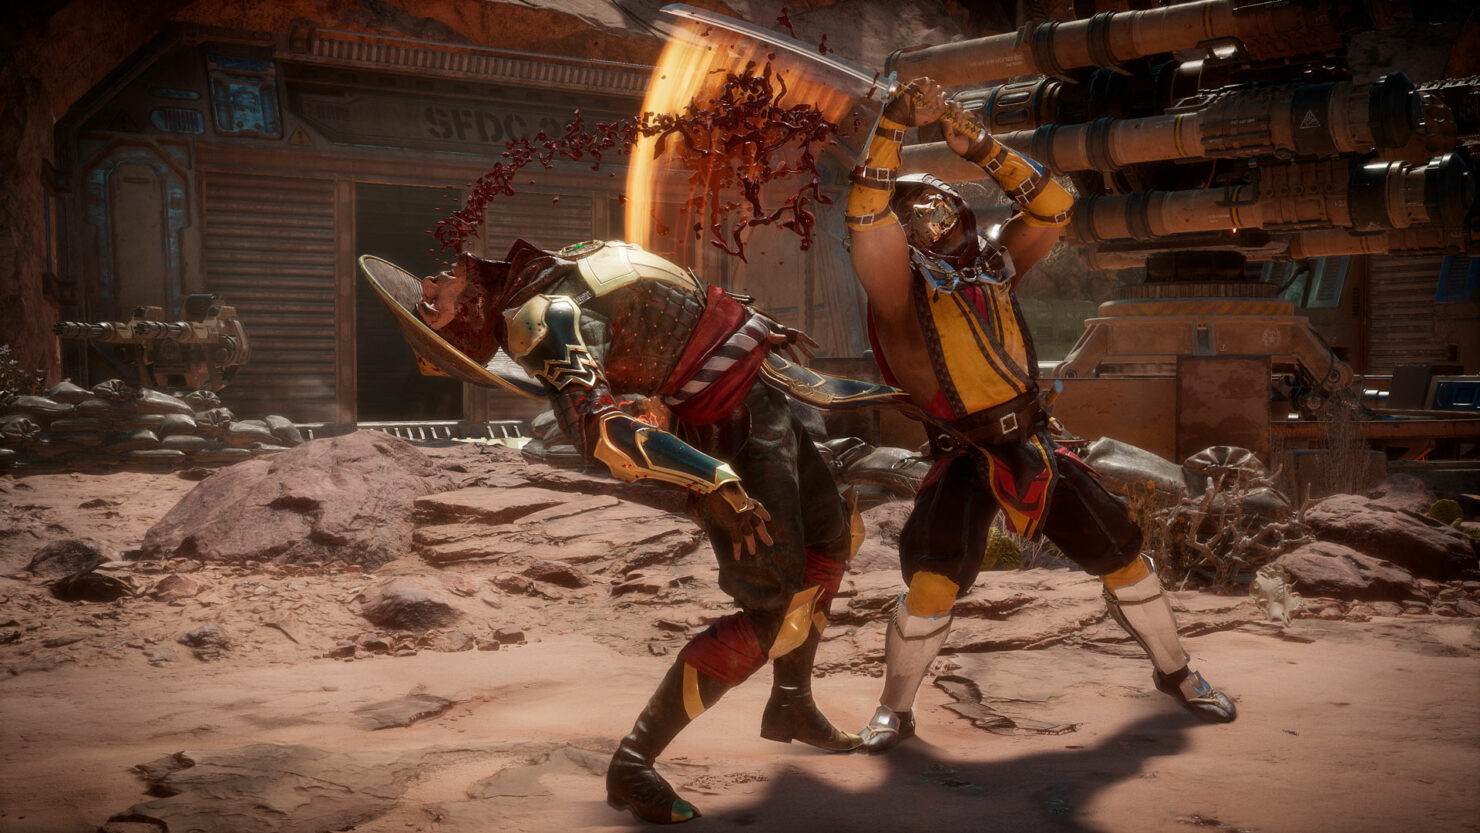 mortal-kombat-11-screenshots-1480x833.jp